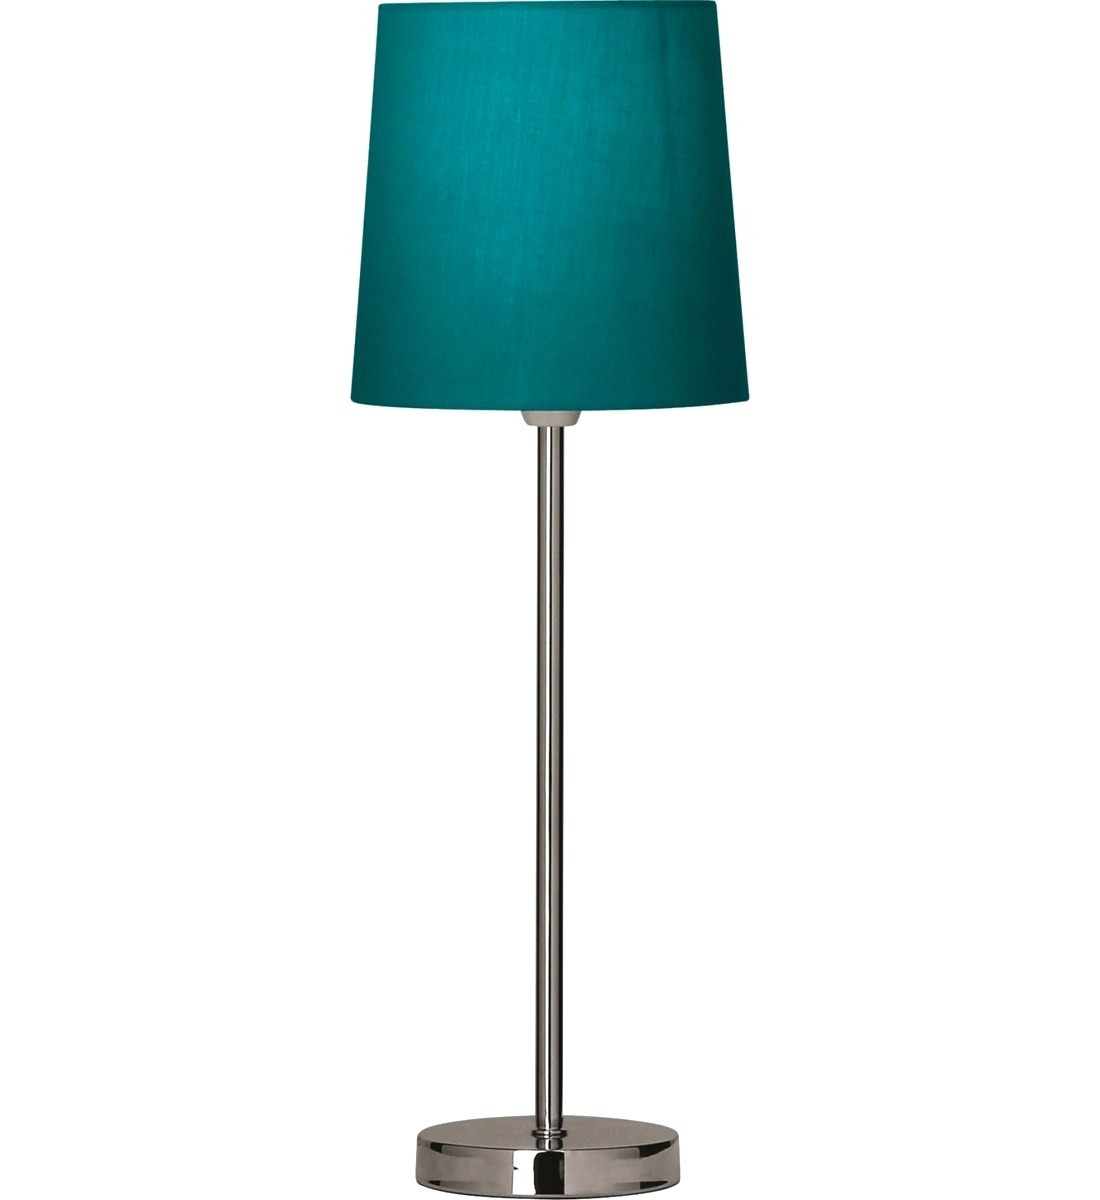 Best ideas about Tall Desk Lamp . Save or Pin Desks Tall Skinny Desk Lamp Tall Narrow Table Lamp Tall Now.